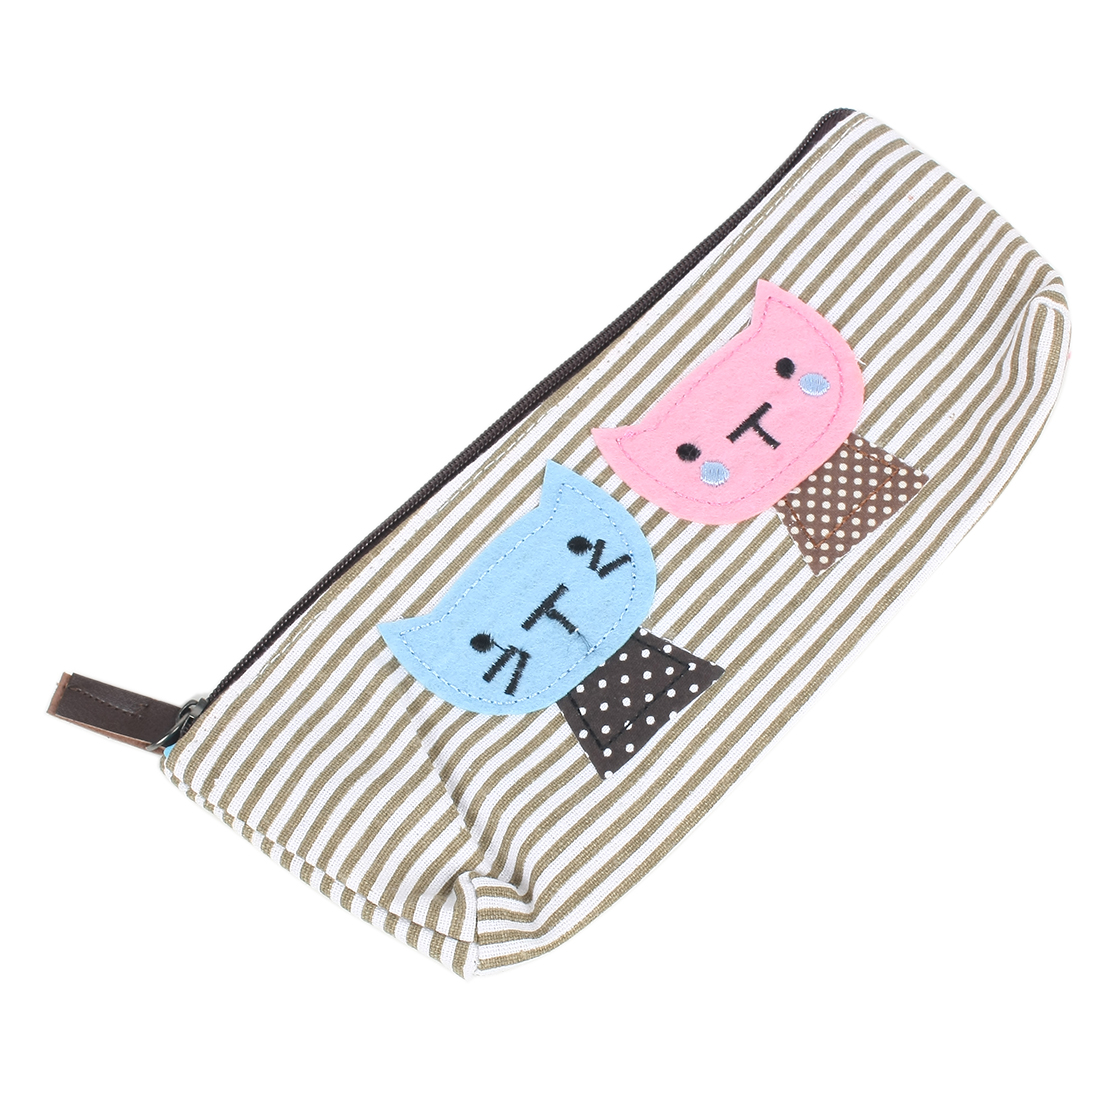 Lovely Dual Cat Decor Stripes Pattern Zippered Single Pocket Pencil Rulers Pen Case Holder Canvas Bag Pouch Coffee Color